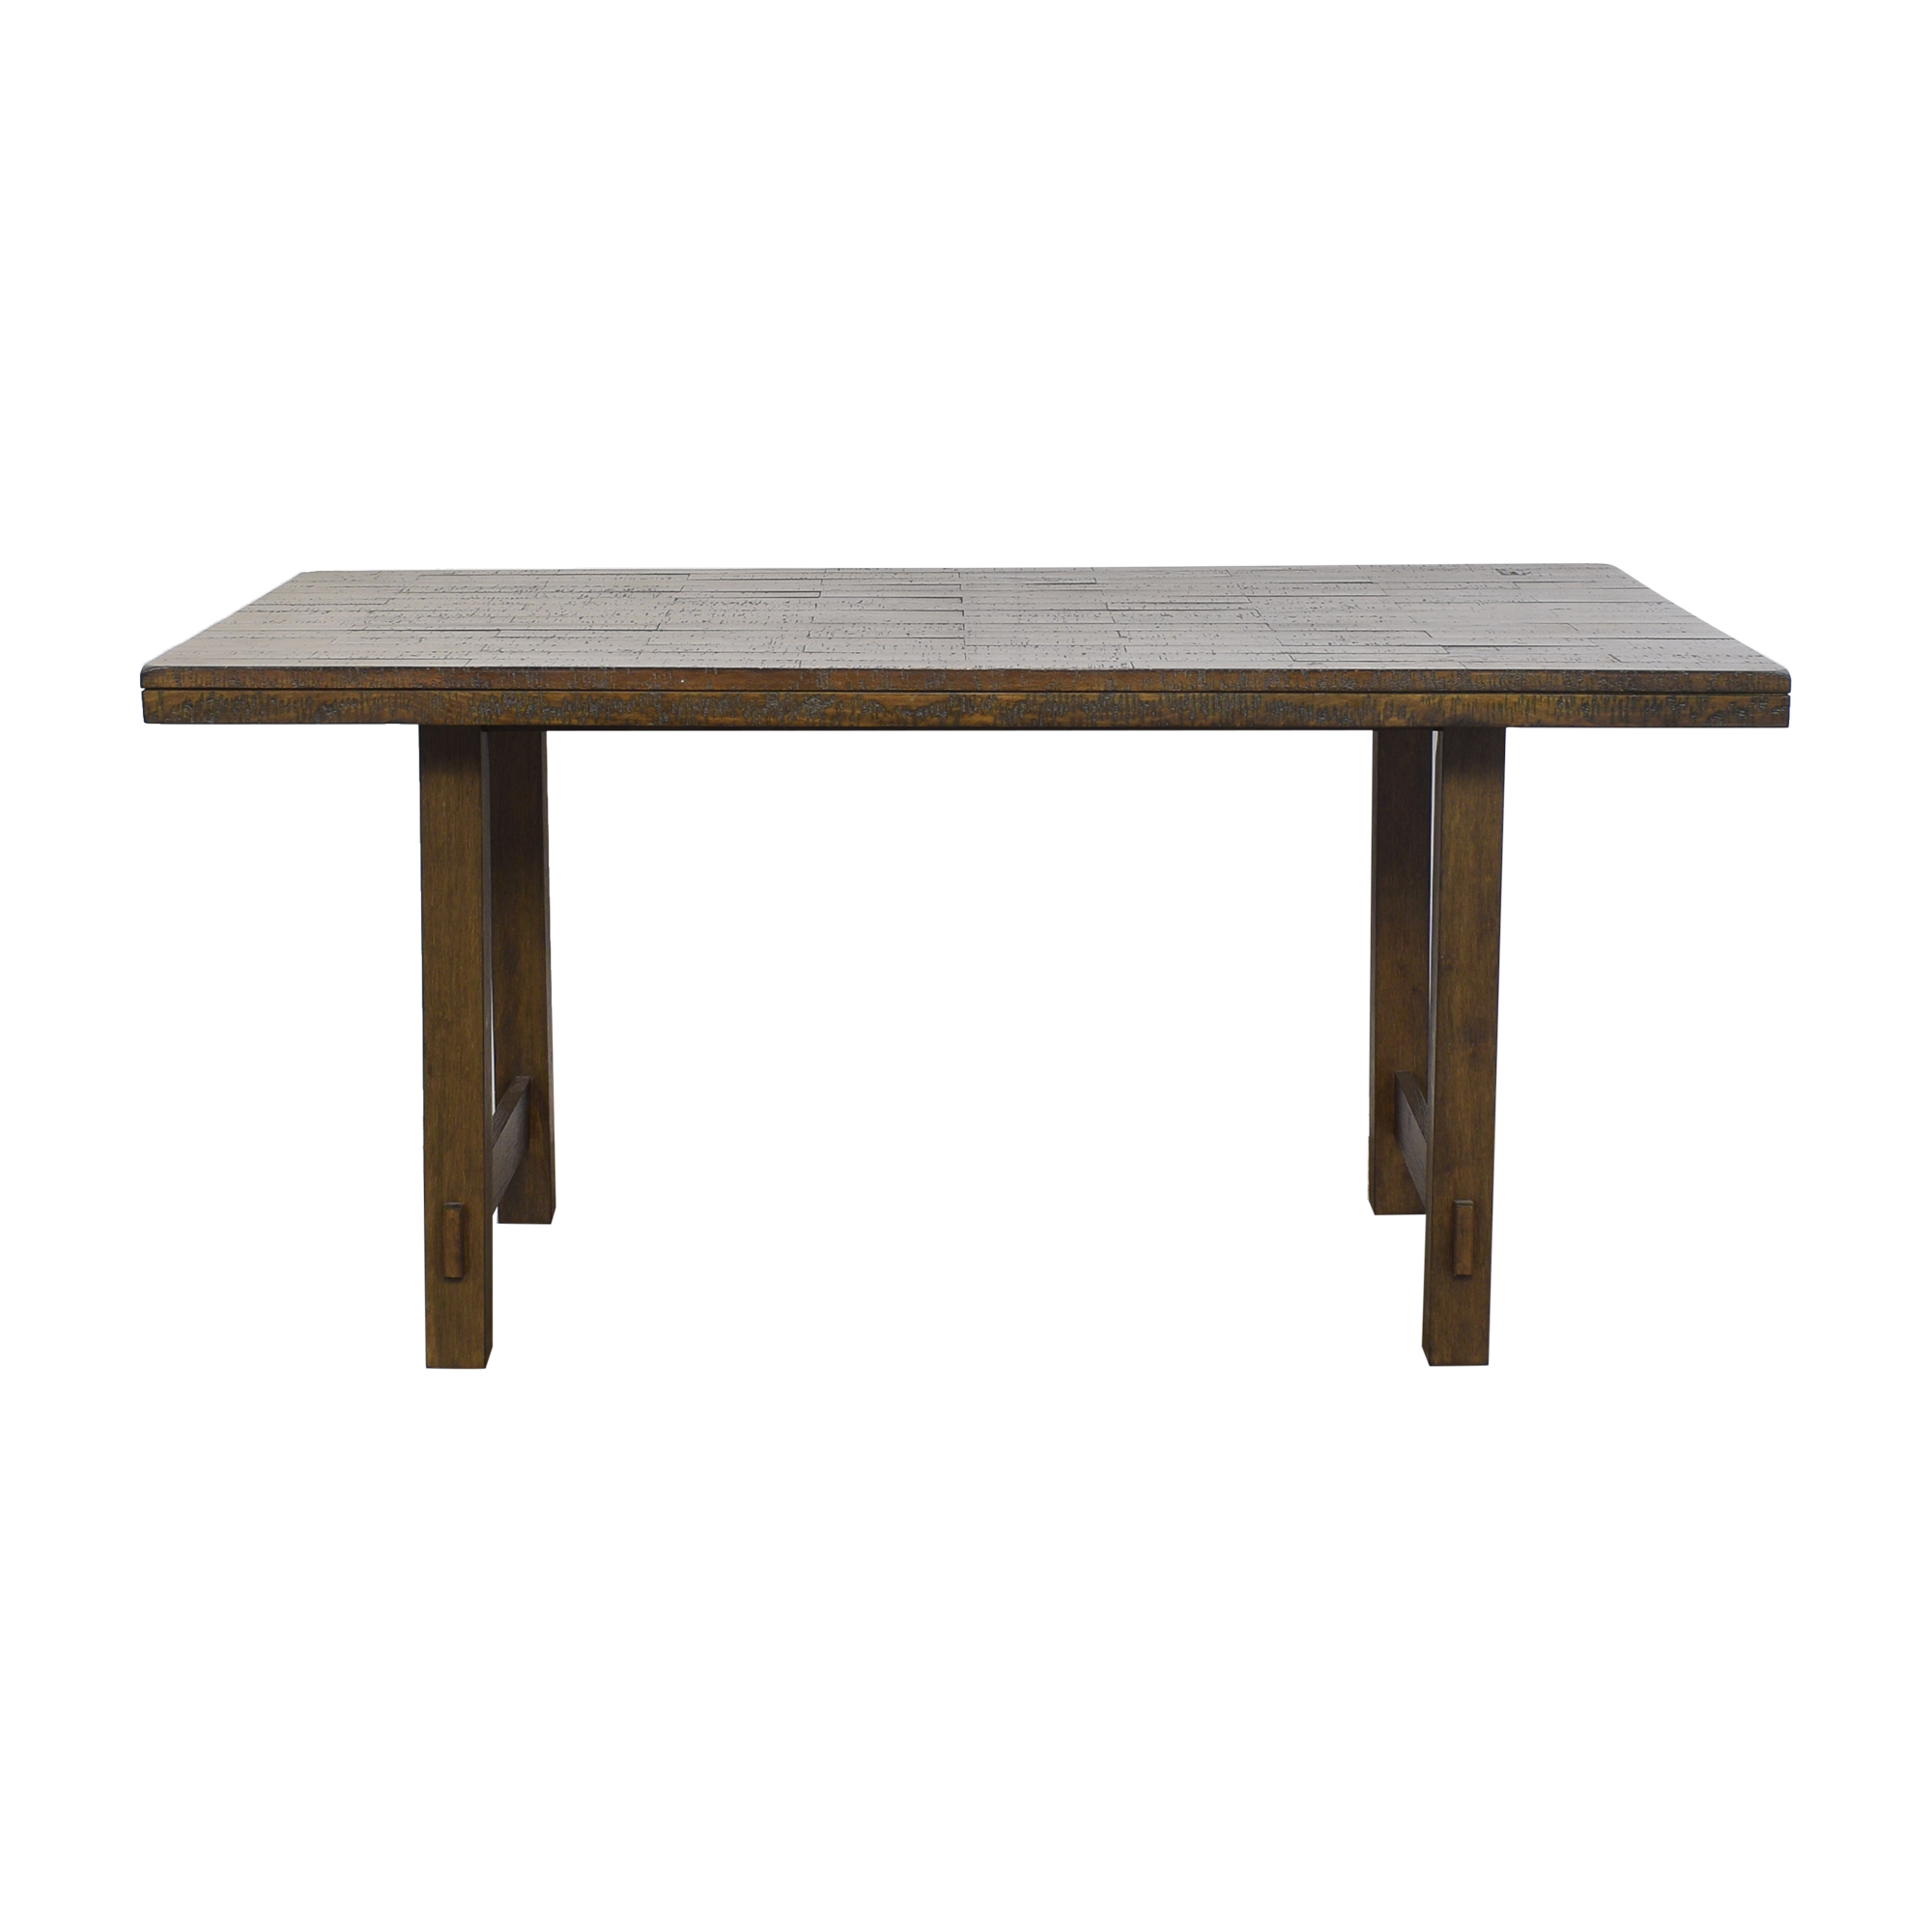 Wayfair Wayfair Channel Island Solid Wood Dining Table on sale